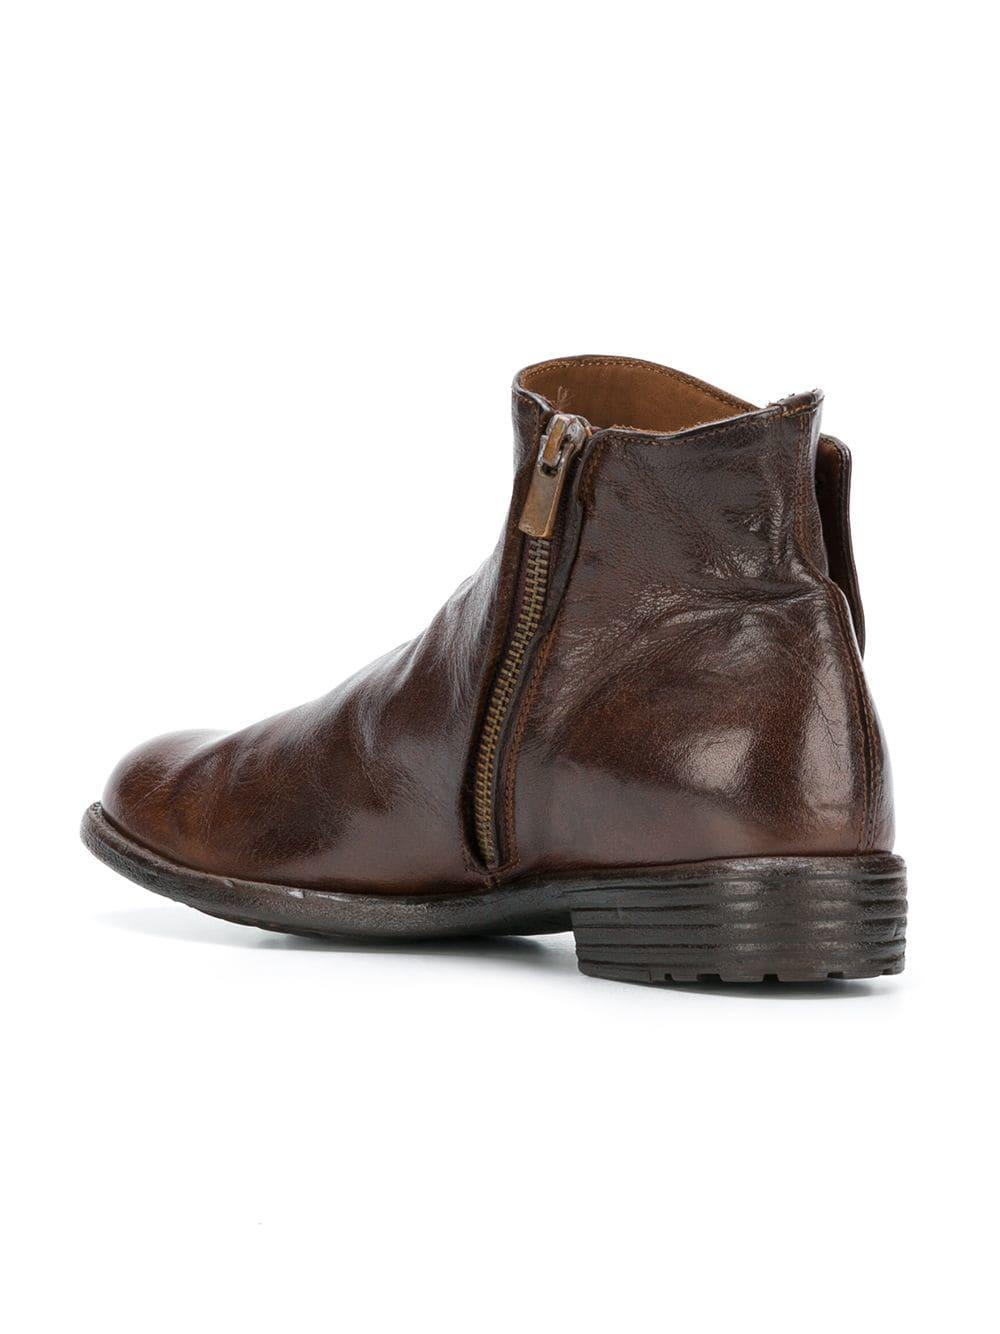 Officine Creative Leather Mars Boots In Brown Lyst